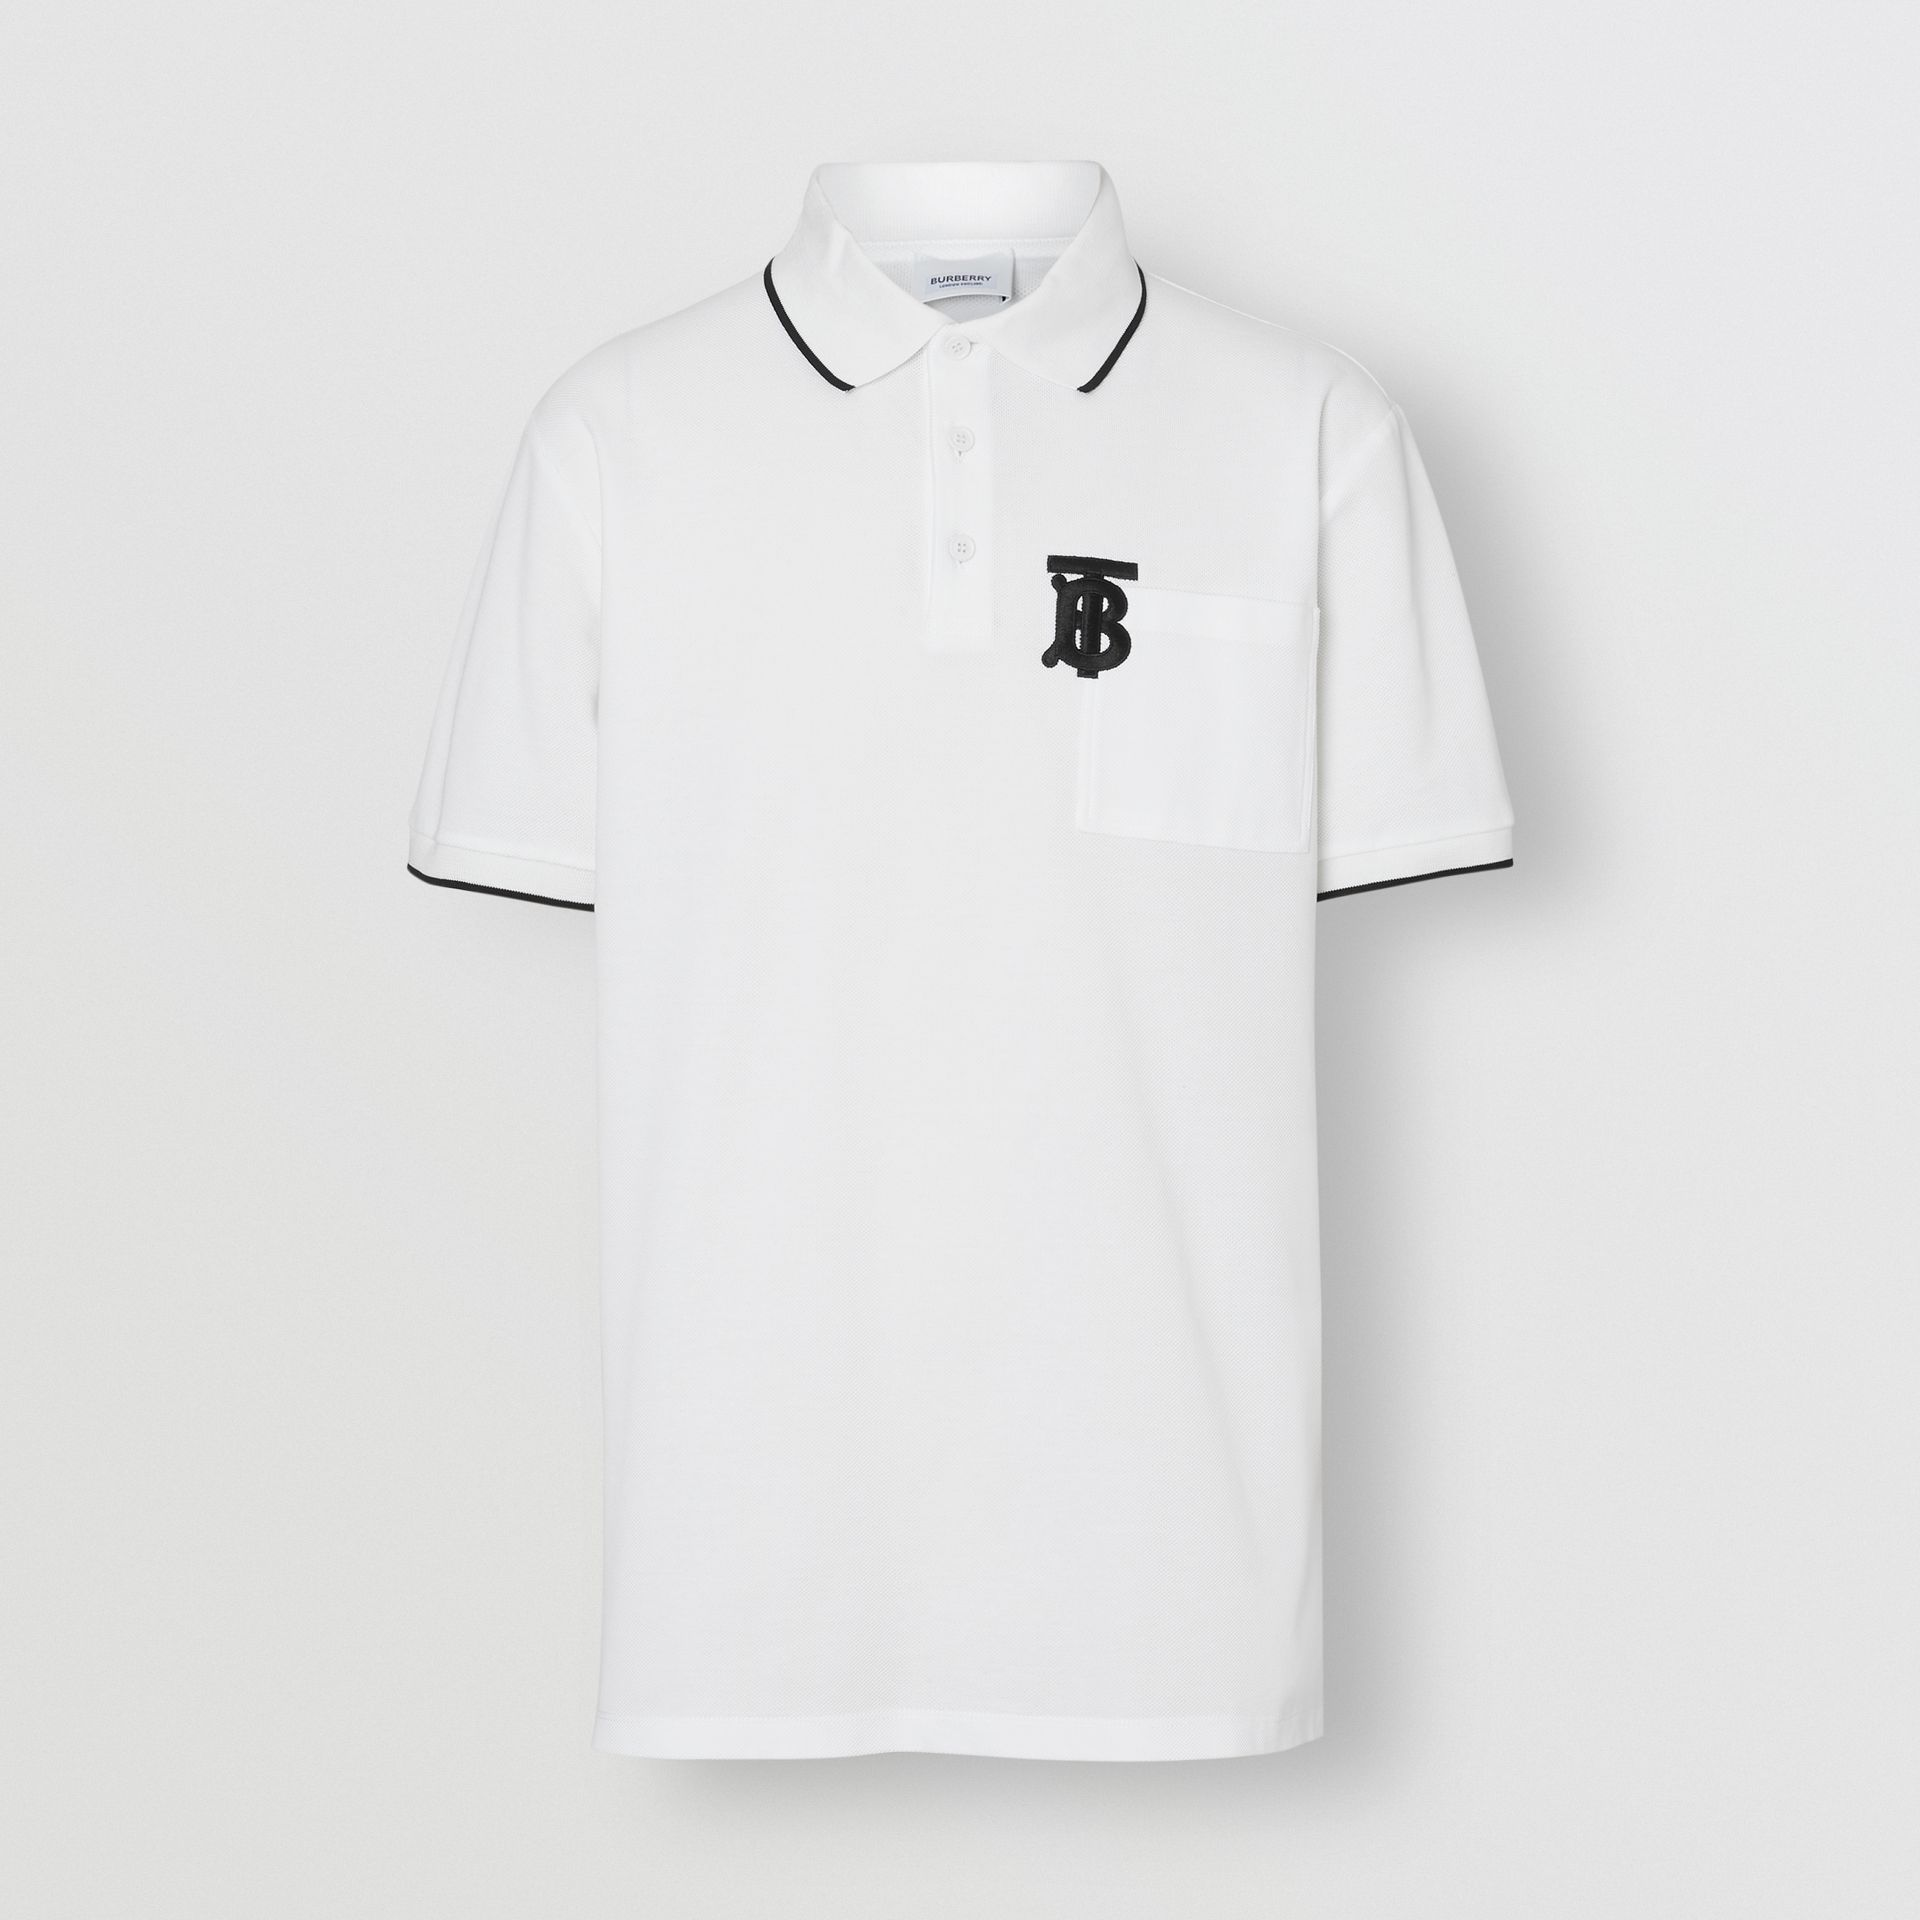 Monogram Motif Tipped Cotton Piqué Polo Shirt in White - Men | Burberry - gallery image 3